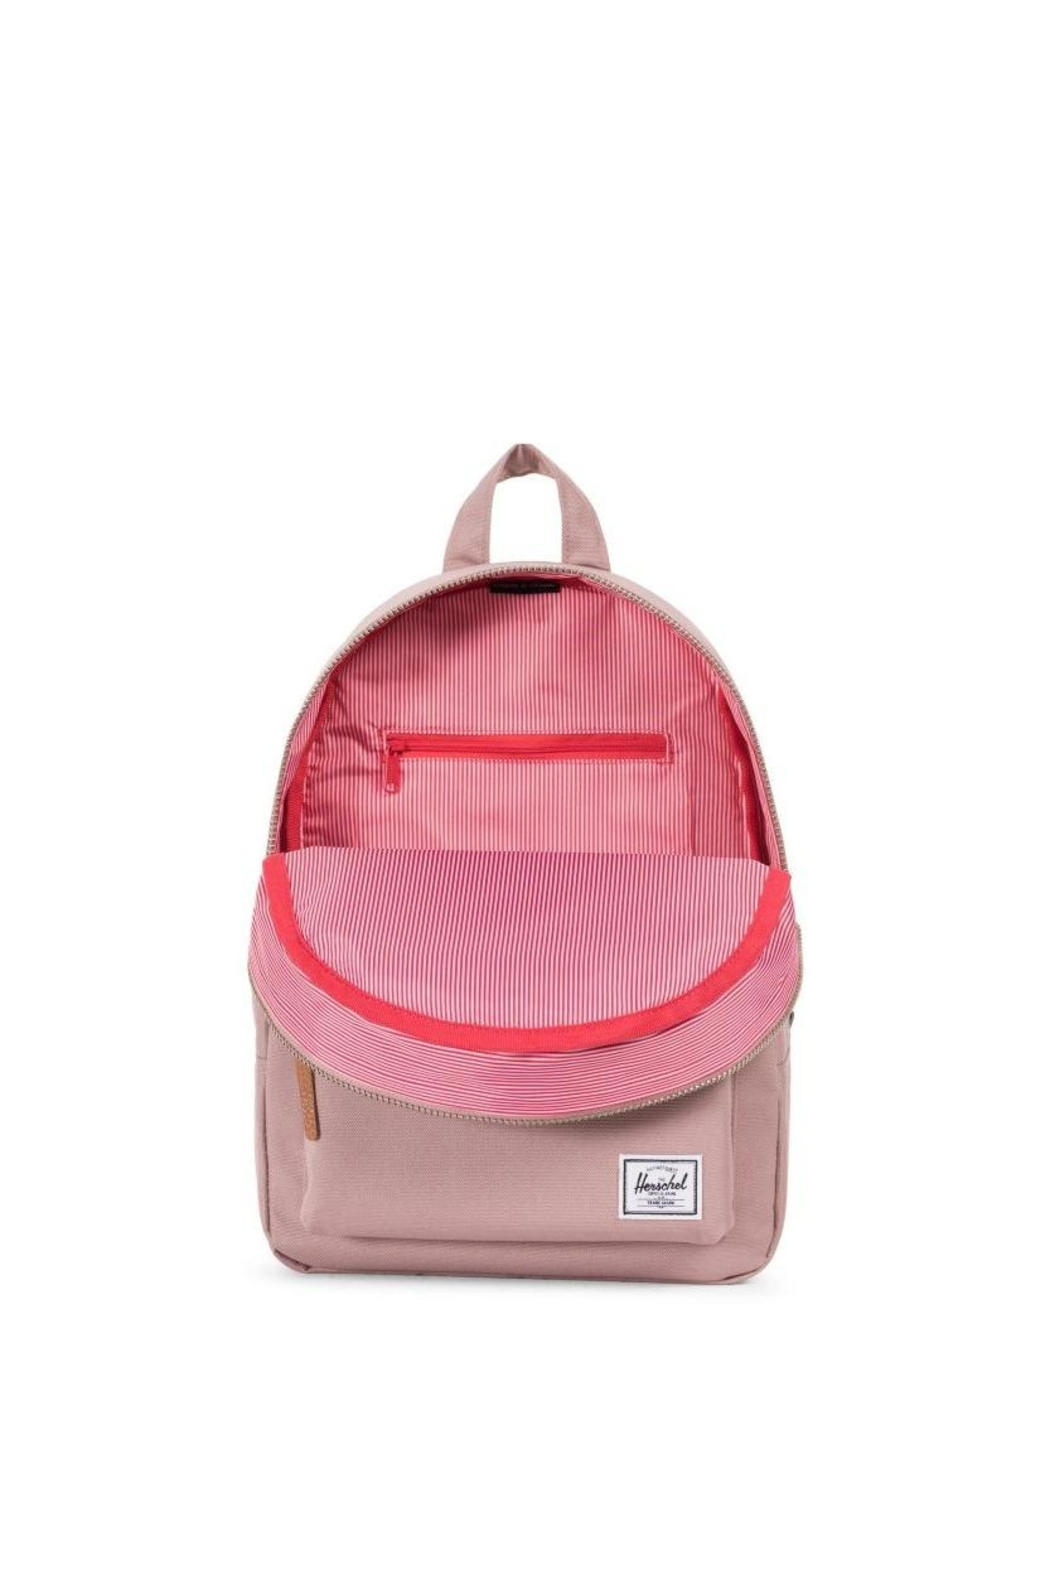 Herschel Supply Co. Small Pink Backpack - Front Full Image